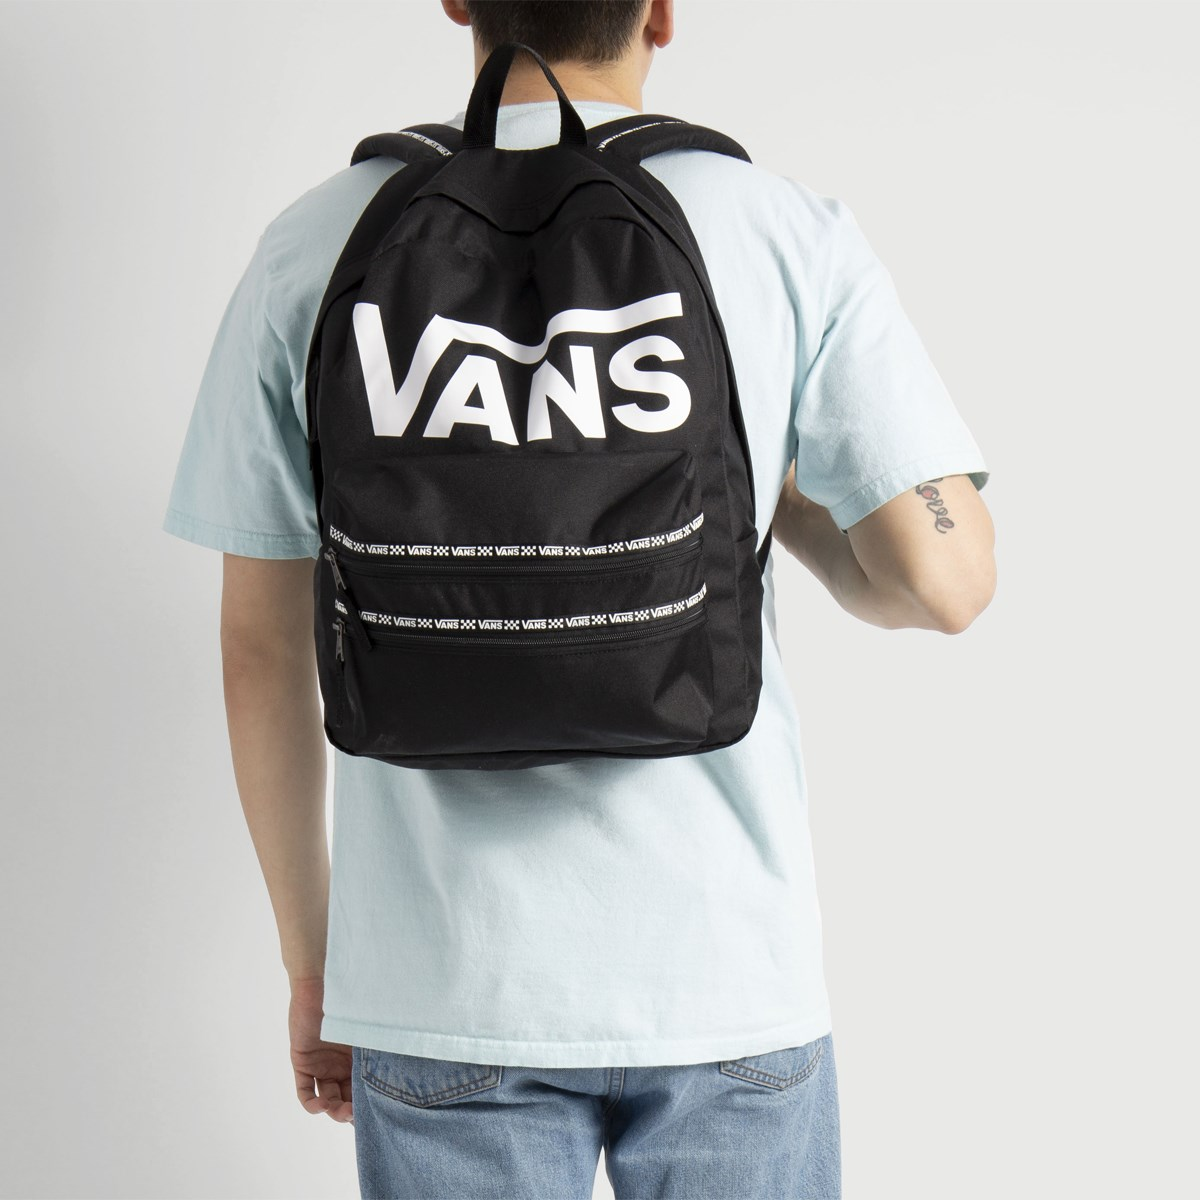 d2a9bddcefaeb8 Sporty Realm II Black Backpack. Previous. default view ...